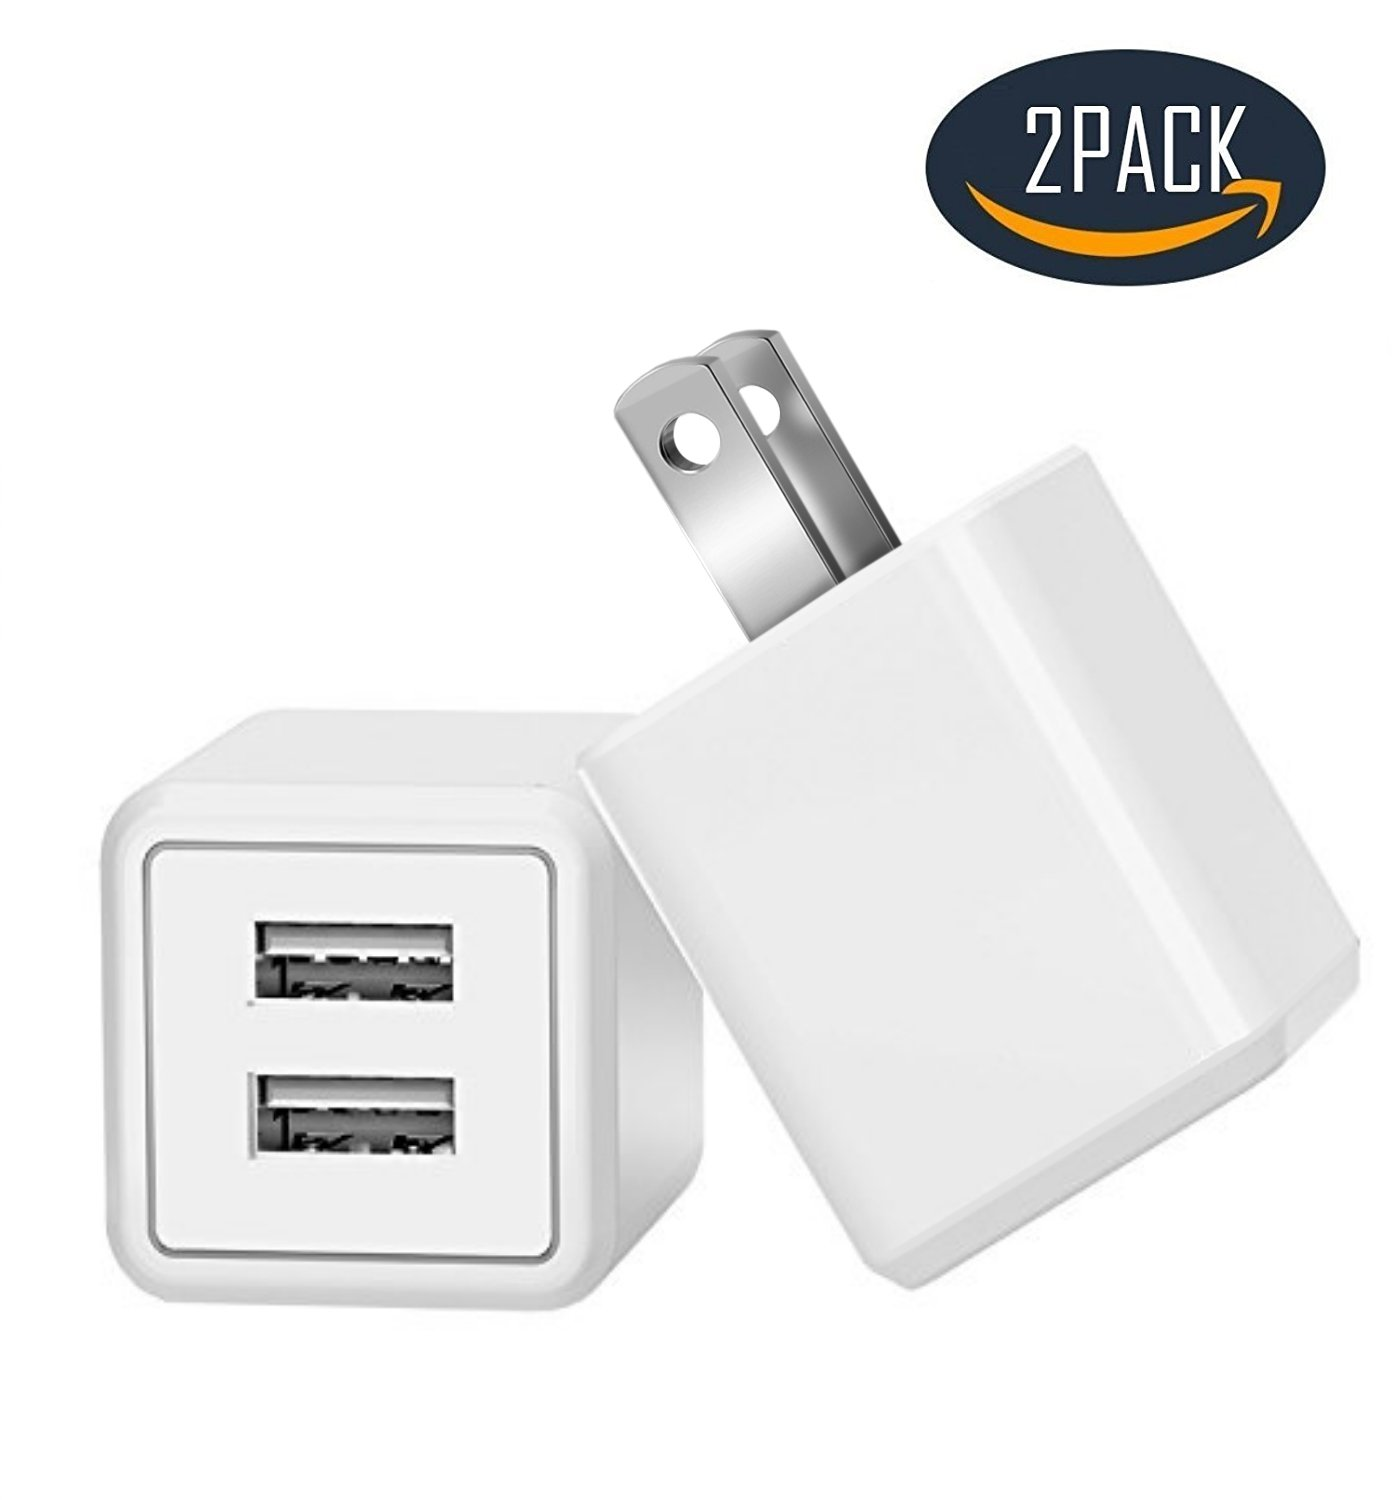 Charger, Charging 2.4A Universal Dual Adapter 2-Port USB Portable Travel Adapter Power Charger for iPhone, iPad, Samsung Galaxy, Nexus, Bluetooth Speaker Headset & Power Bank (2-Pack) (White)